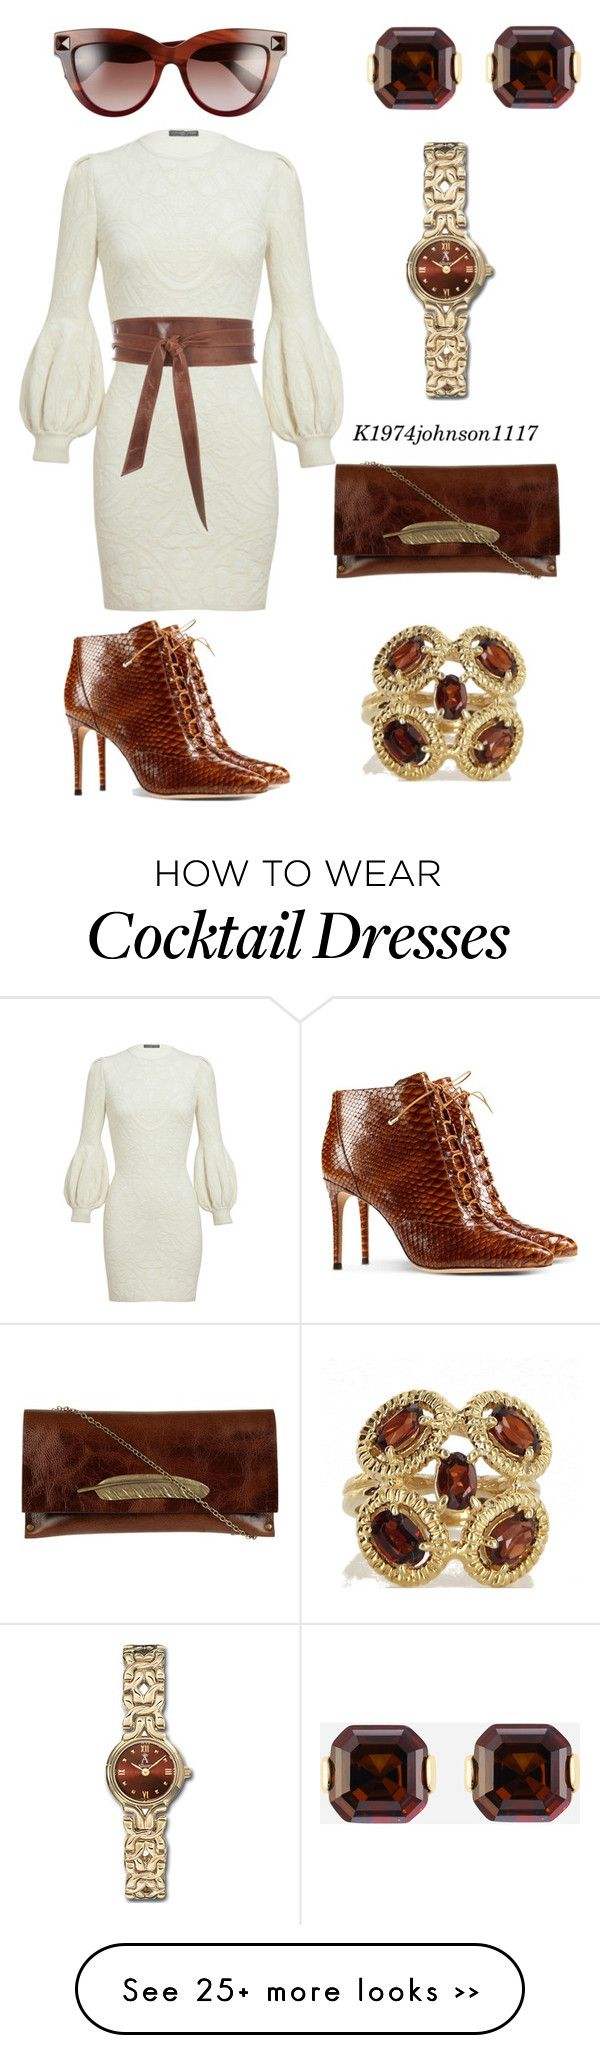 """Brown & Beautiful"" by k1974johnson1117 on Polyvore"